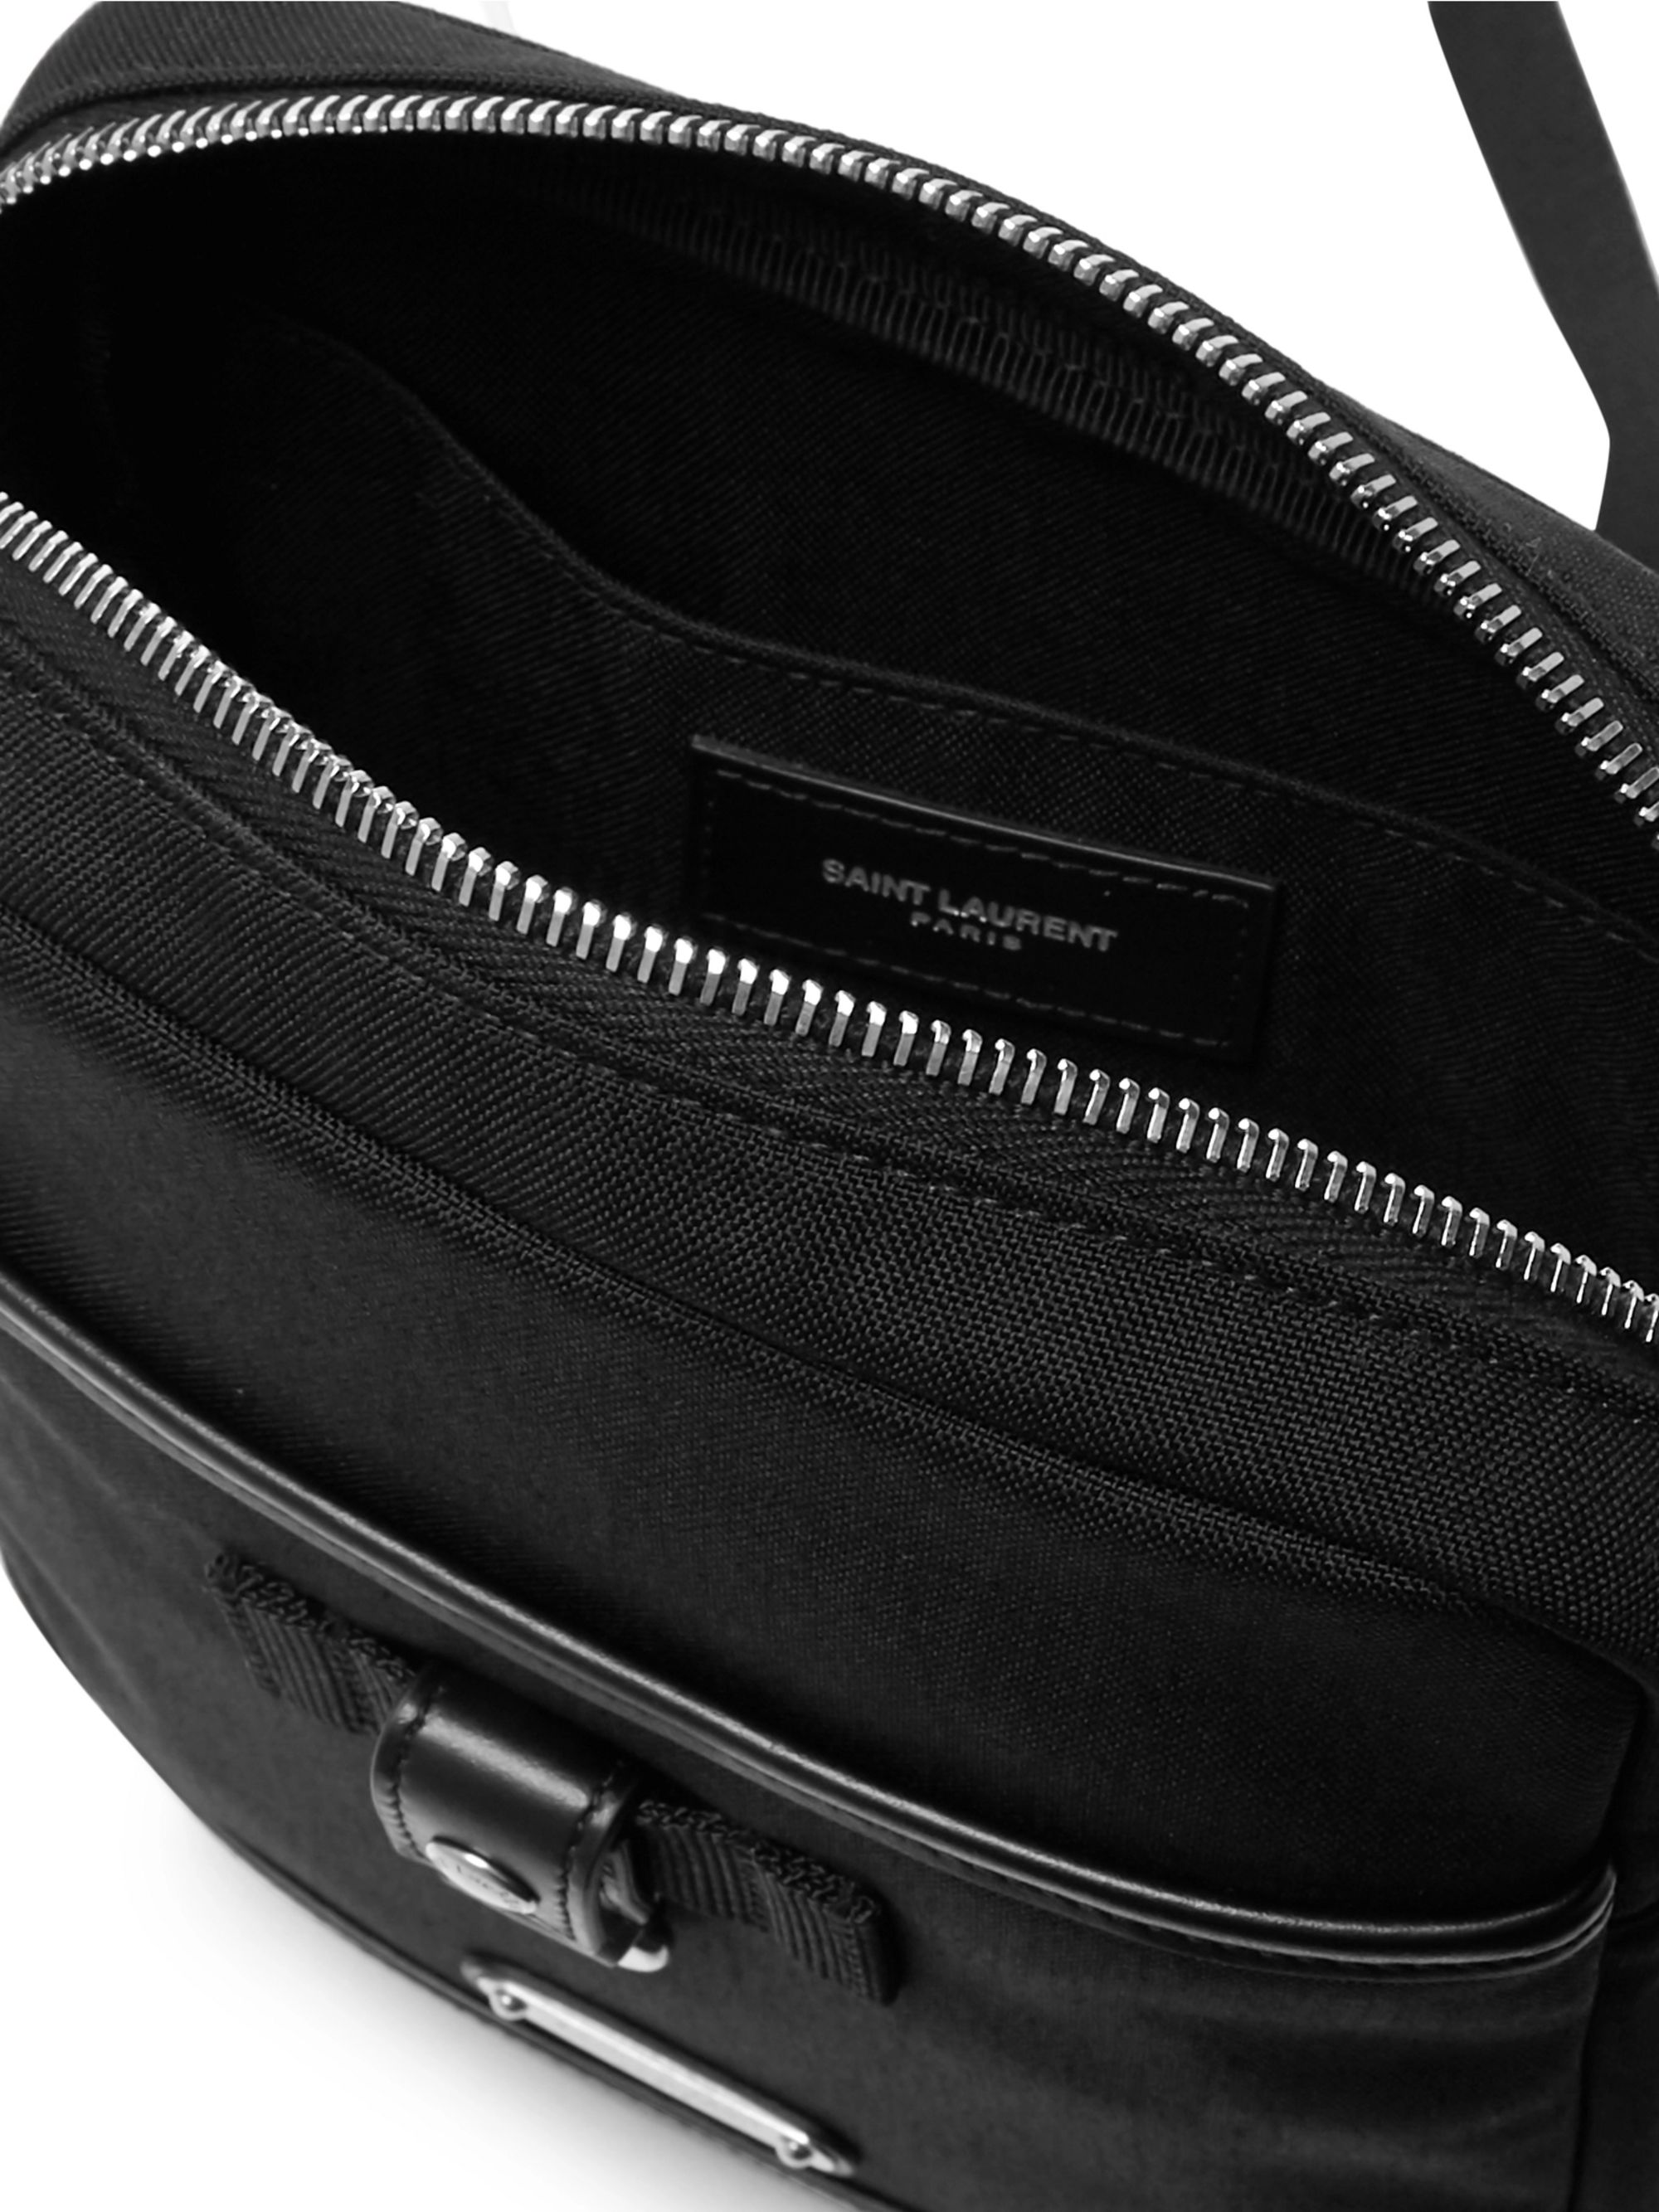 SAINT LAURENT Rivington Race Leather-Trimmed Canvas Messenger Bag